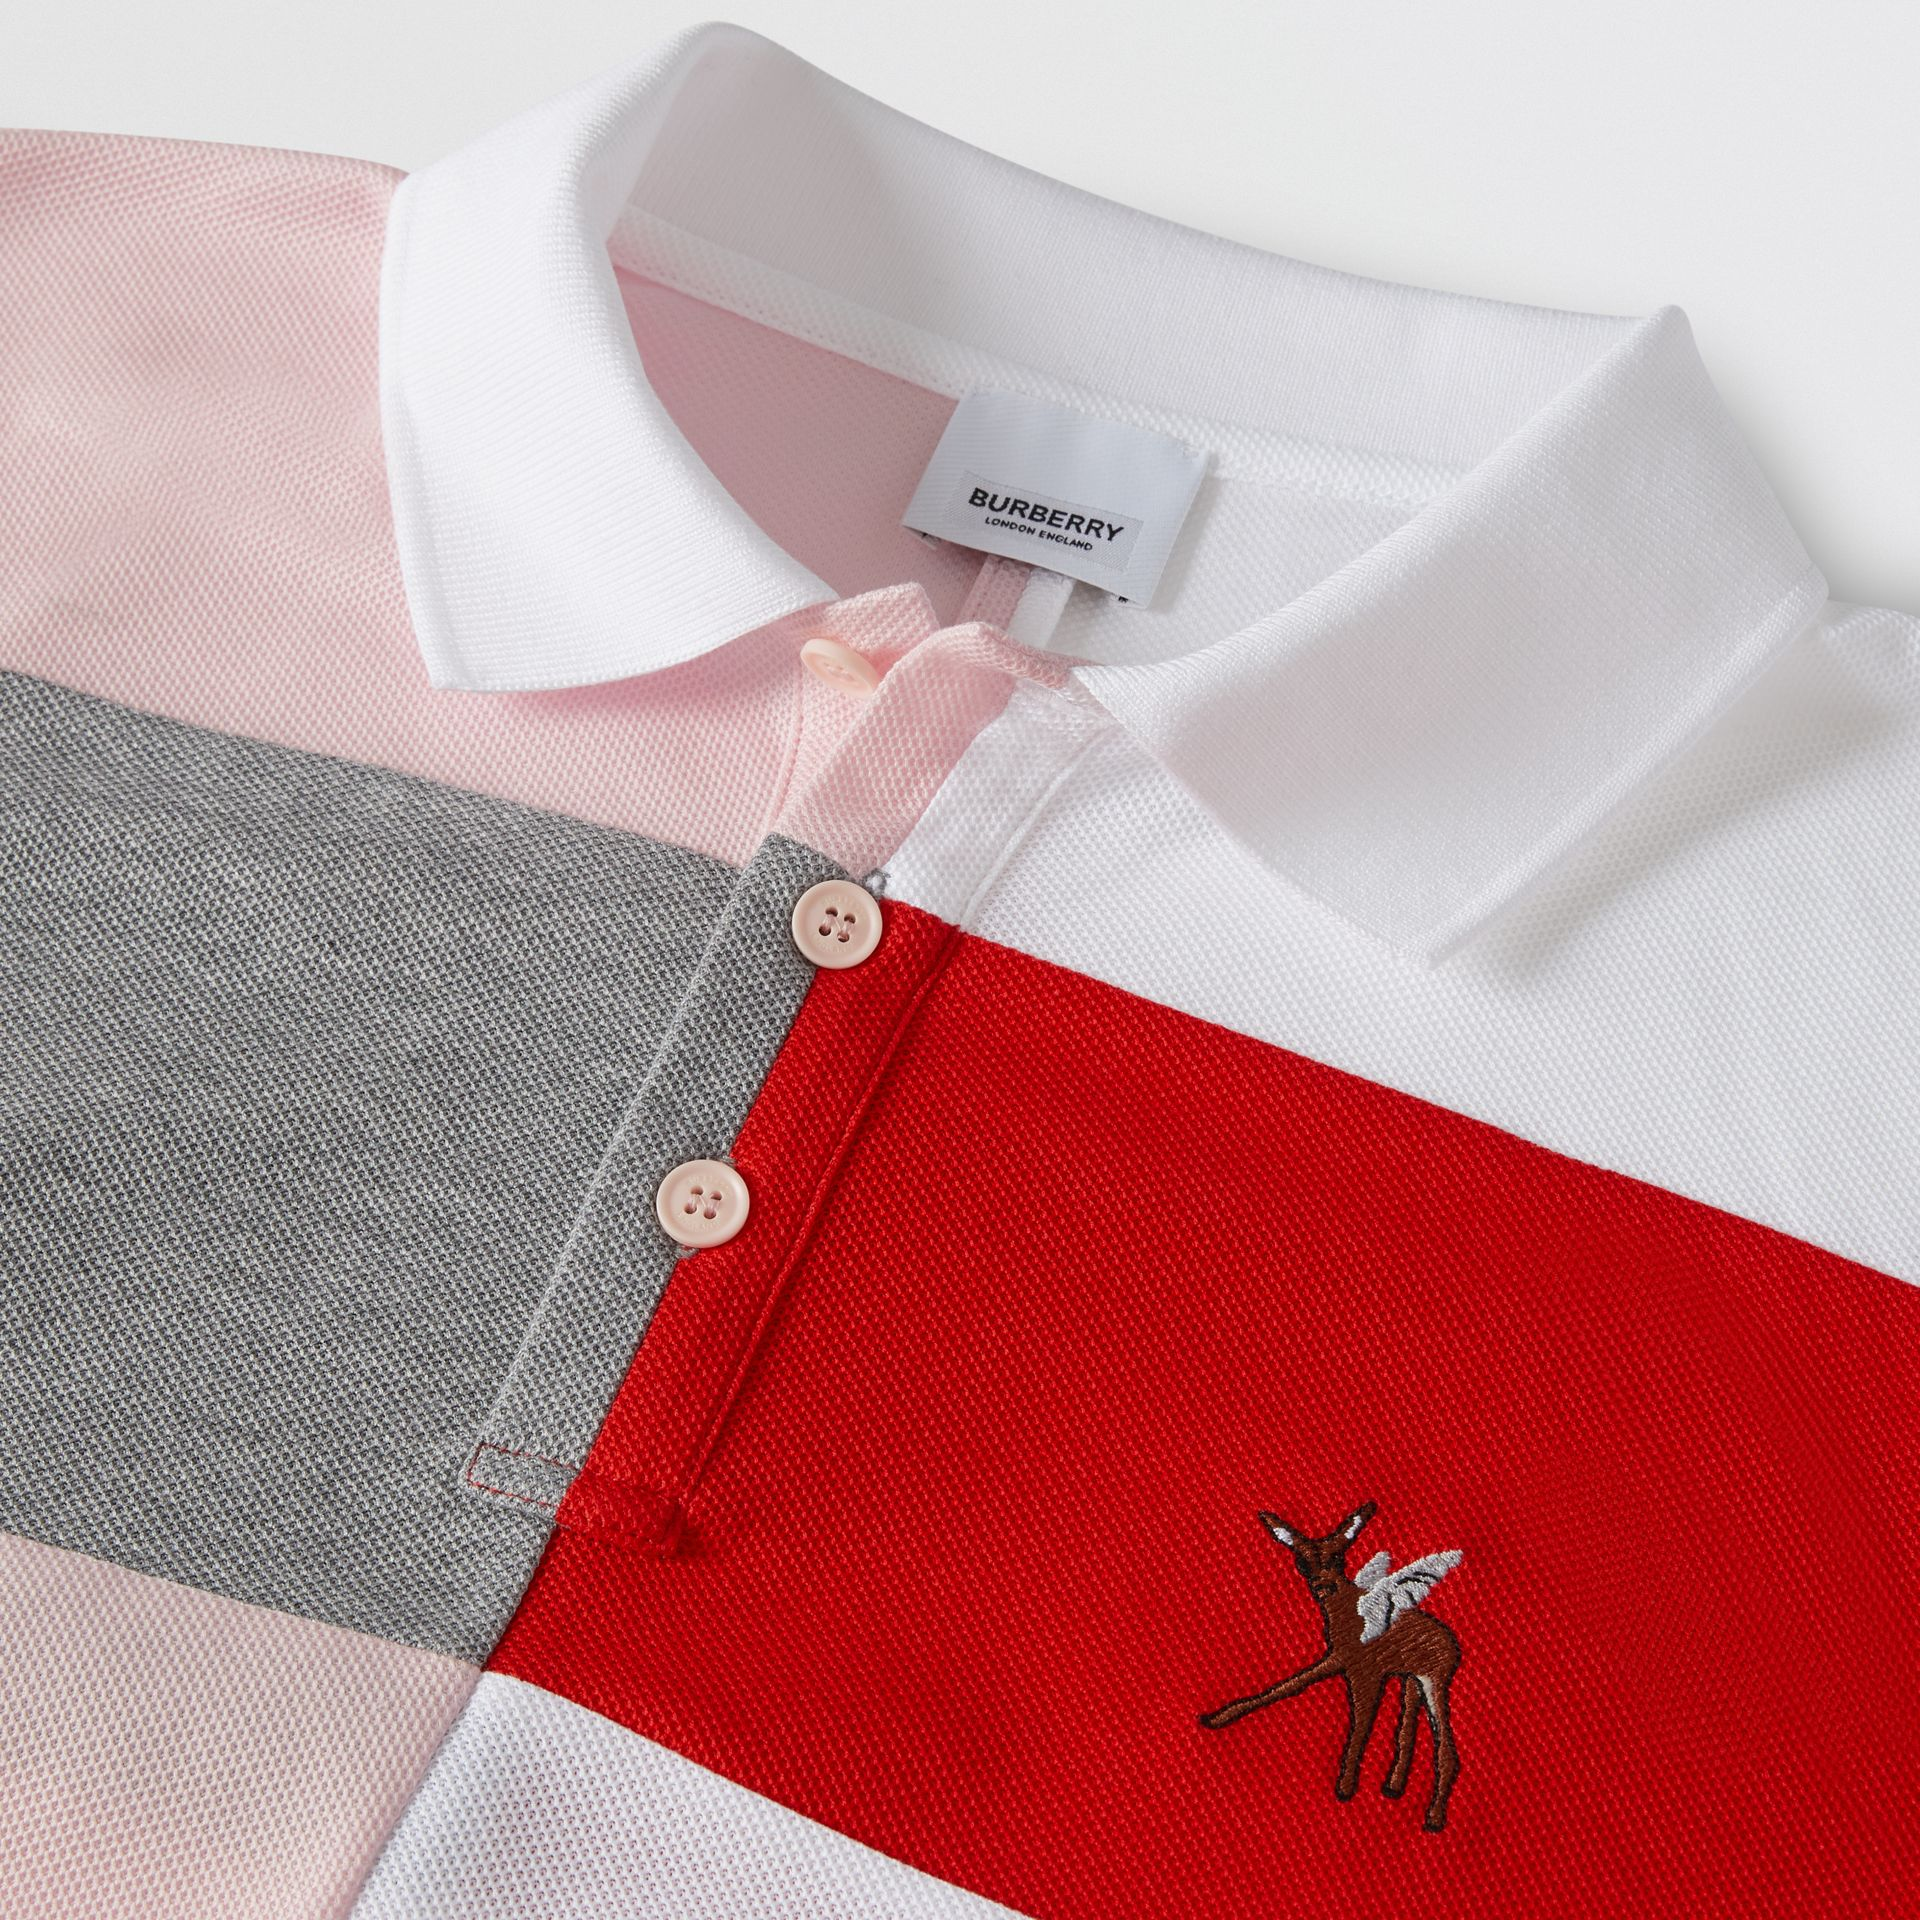 Deer Motif Colour Block Oversized Polo Shirt – Online Exclusive in Alabaster Pink - Men | Burberry - gallery image 7